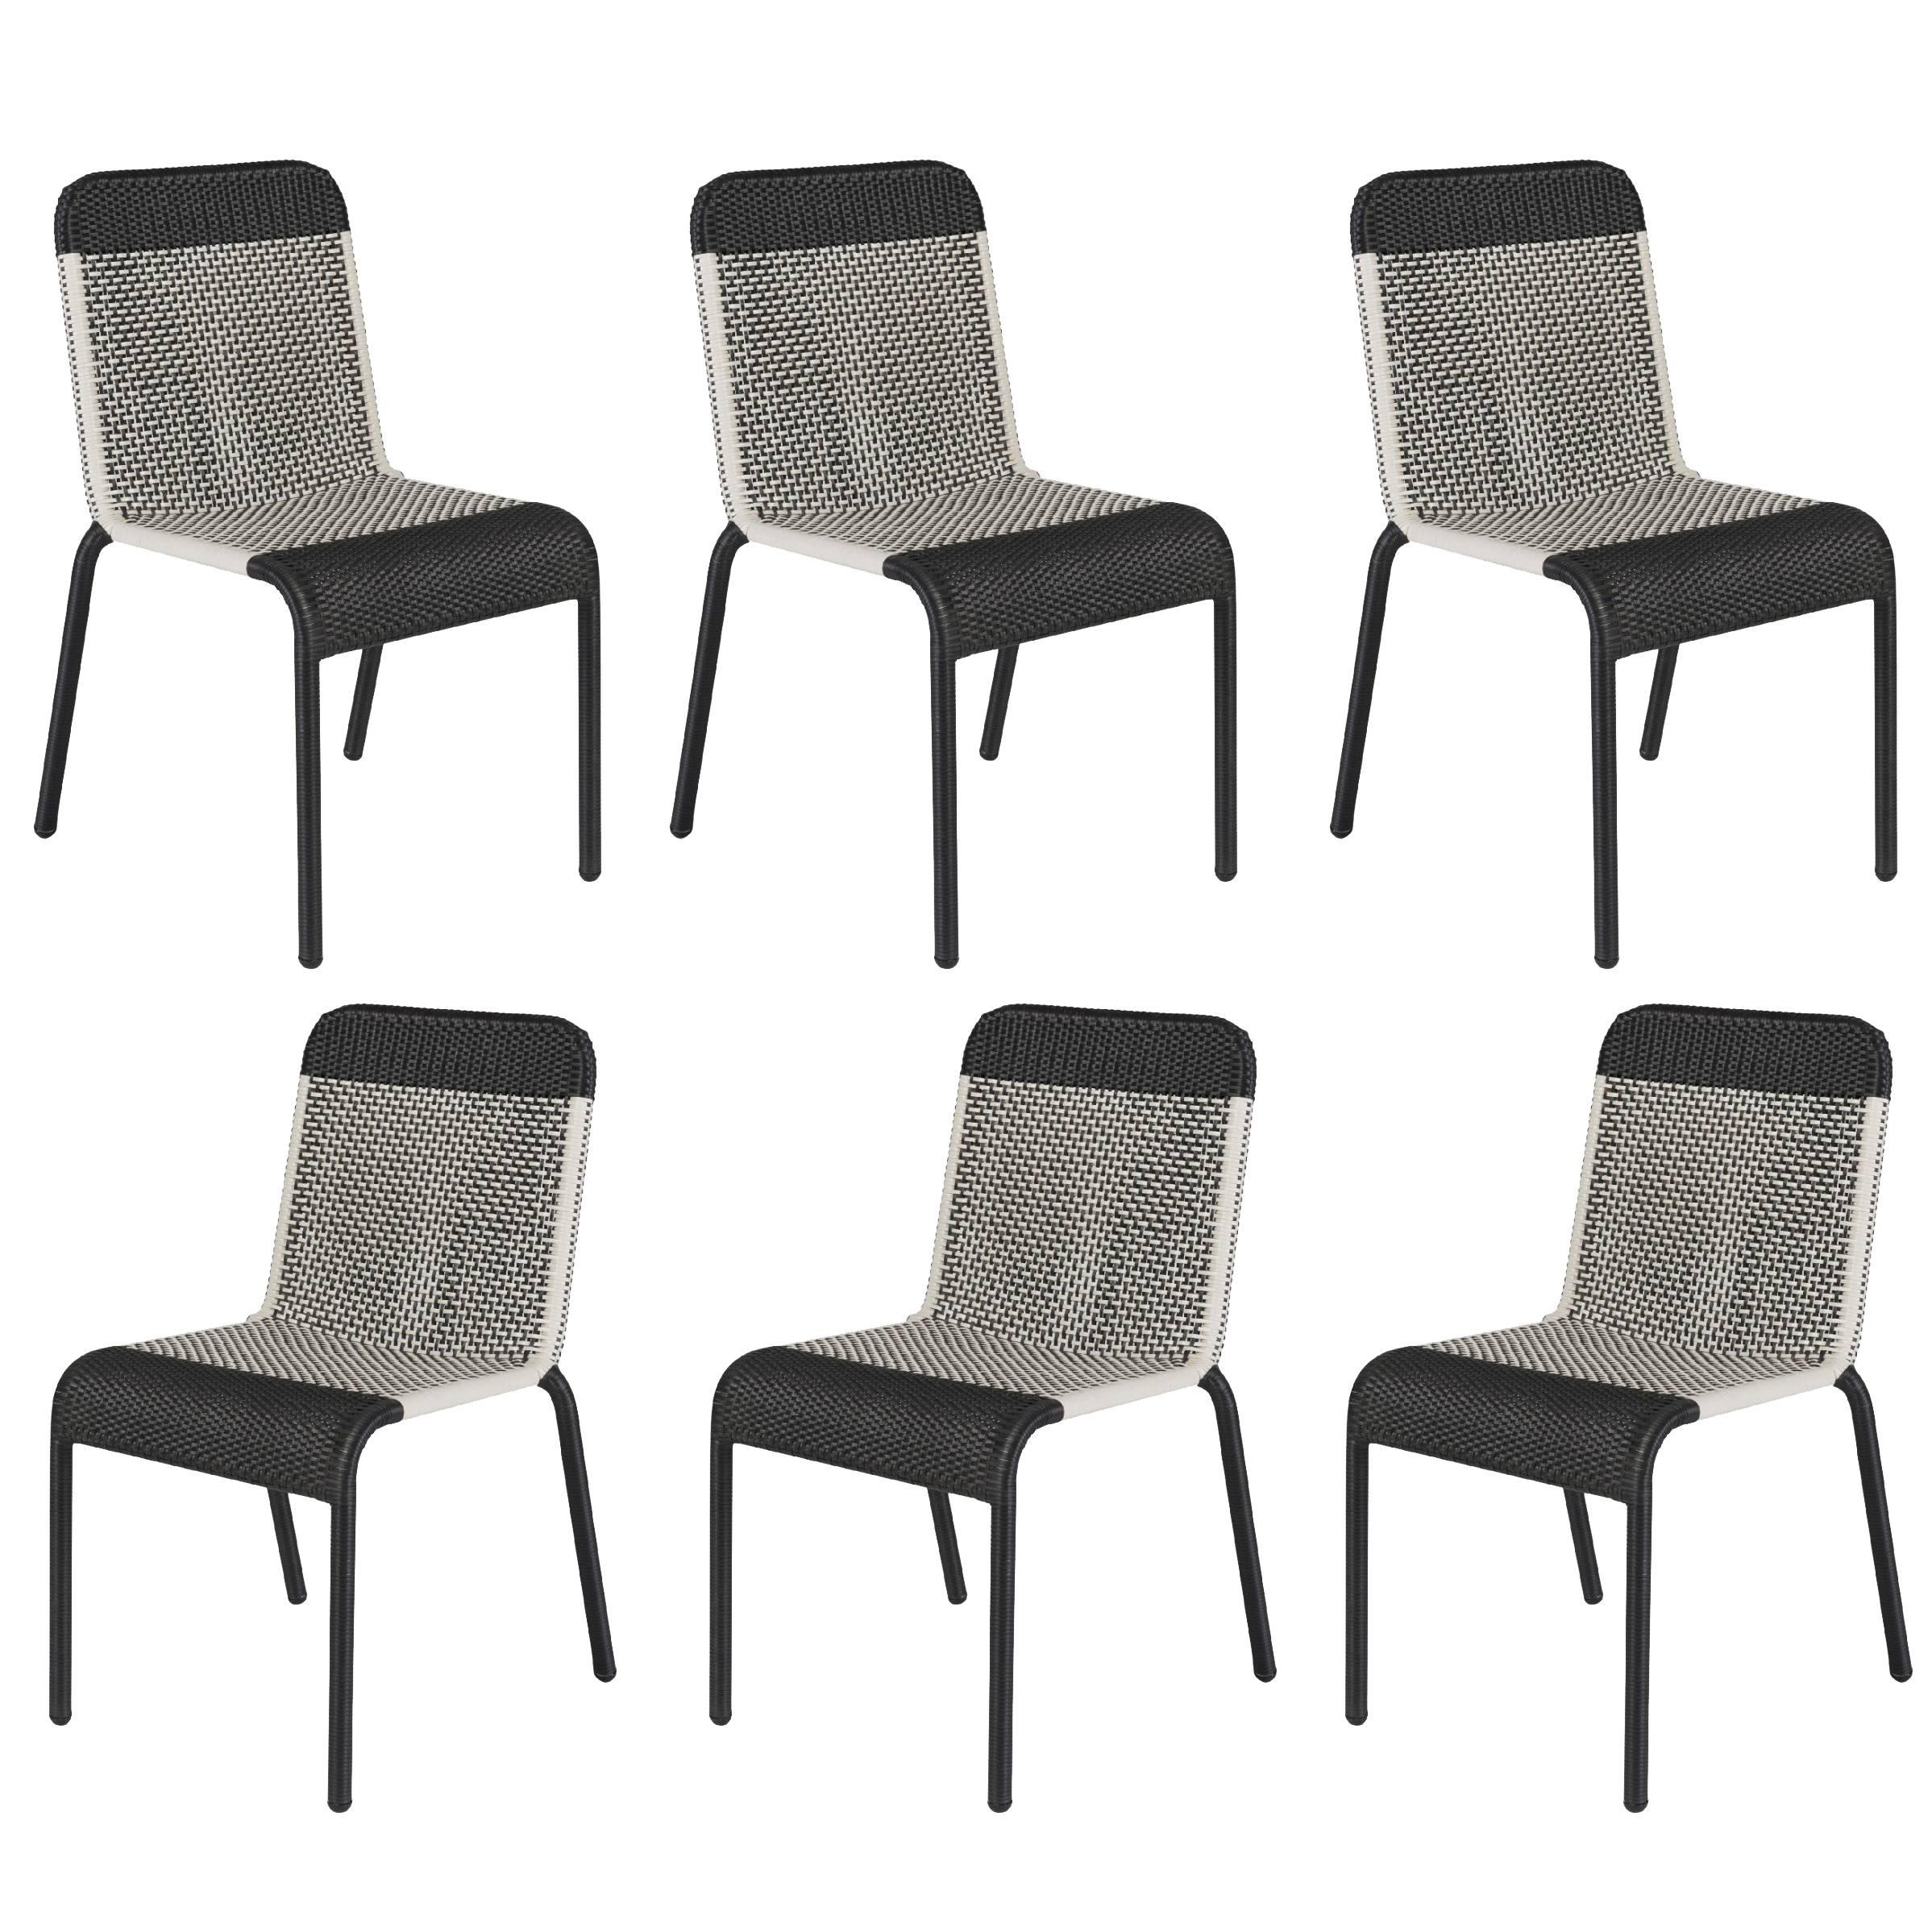 Set Of Six Black And White Resin Stackable Chairs For Sale